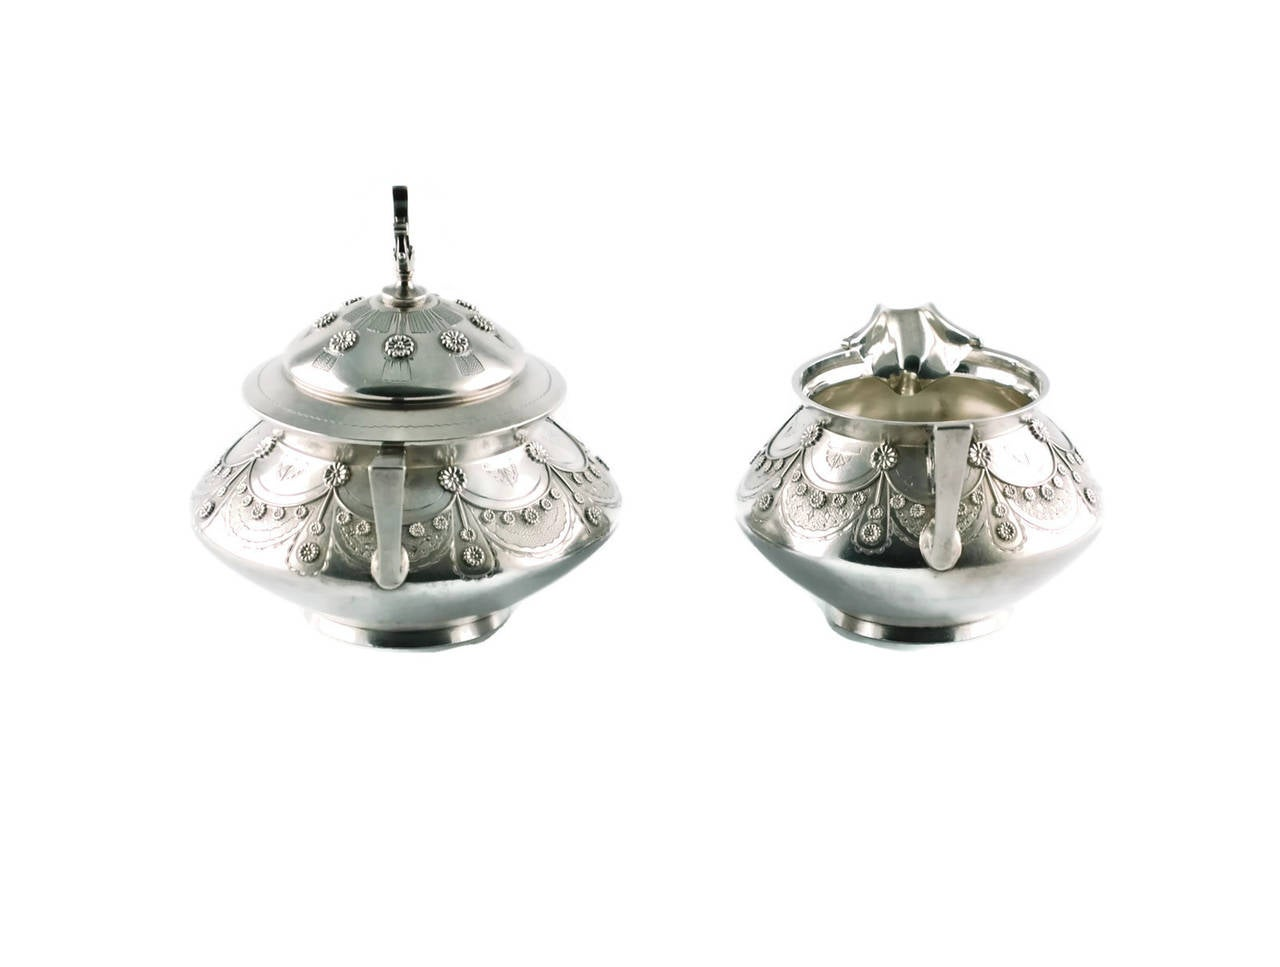 Tiffany & Co Aesthetic Movement Sterling Silver Cream and Sugar Set In Good Condition For Sale In Cincinnati, OH